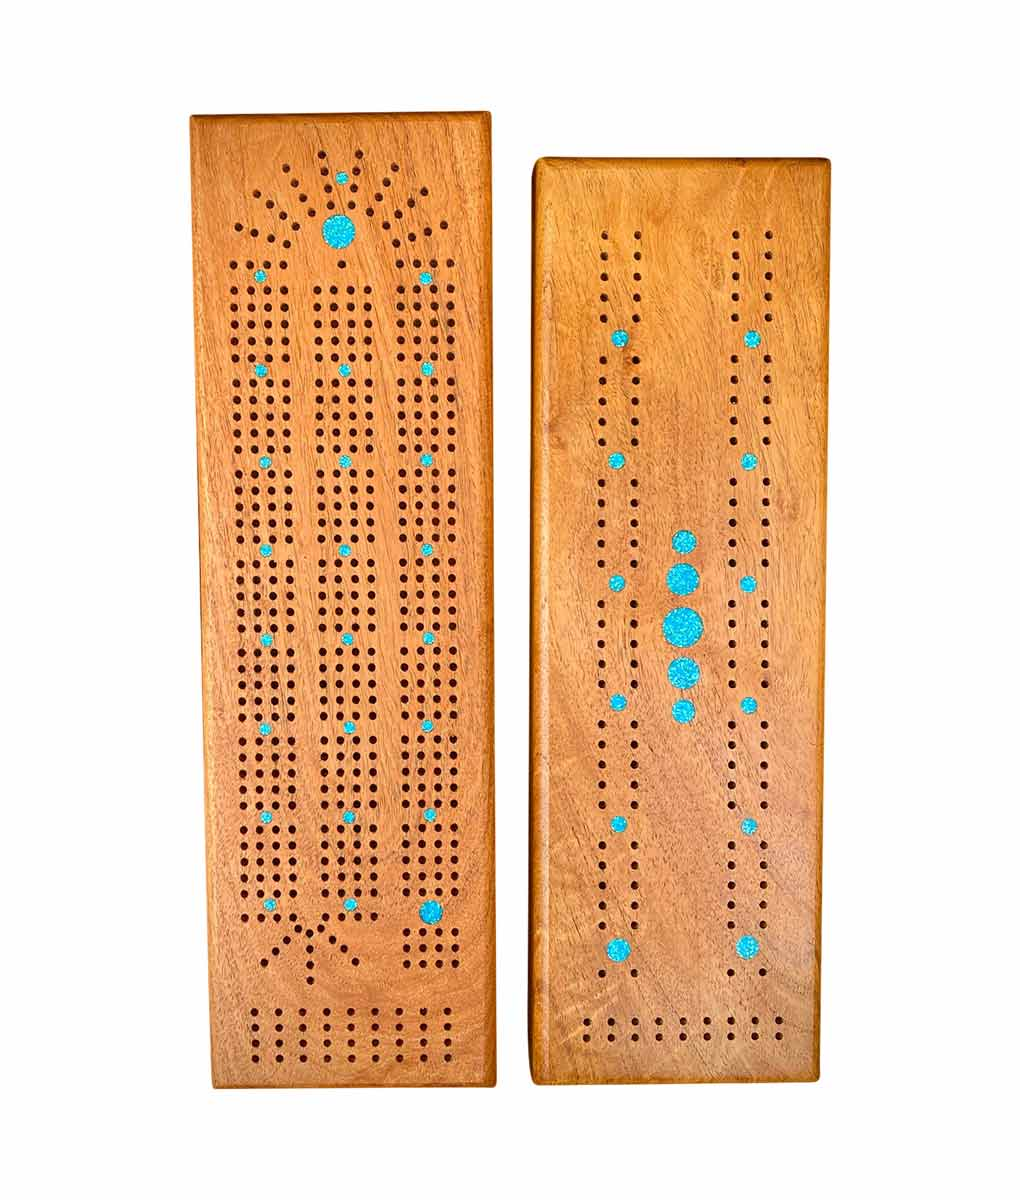 cribbage boards with turquoise inlay for 2 or 4 players